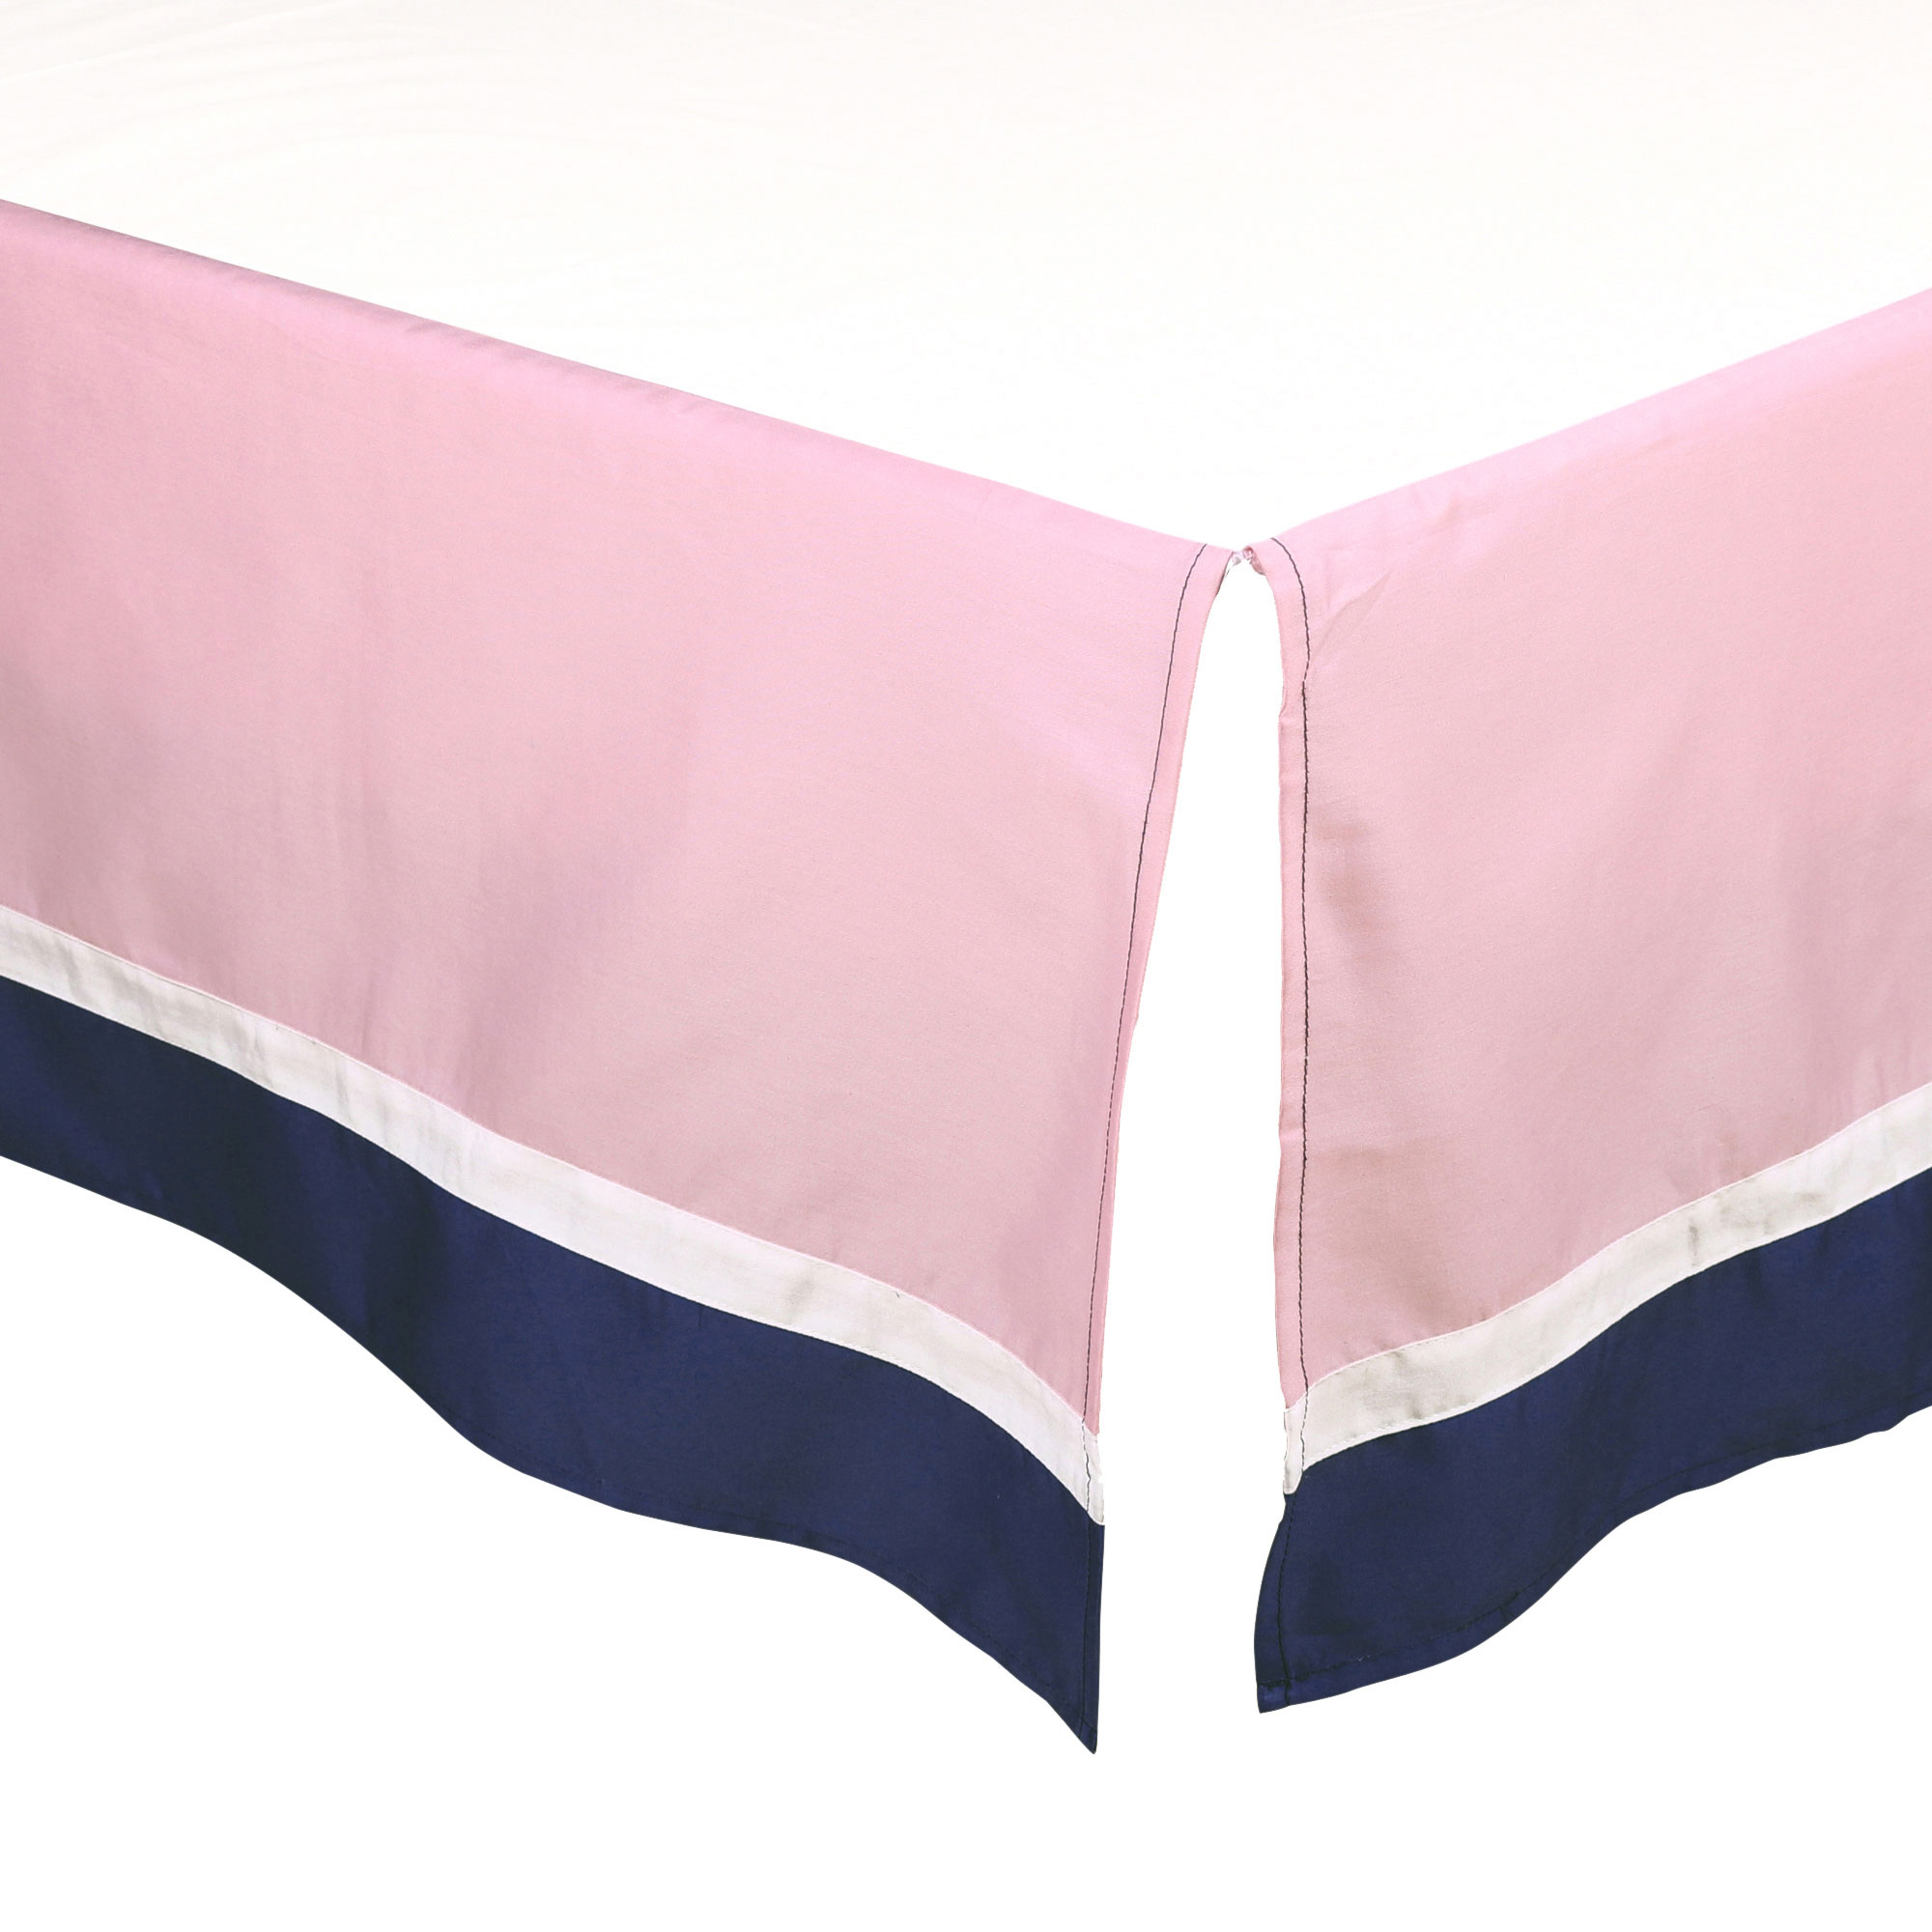 The Peanut Shell Tailored Crib Skirt - Solid Pink and Navy Blue - 100% Cotton Sateen 14 Inch Drop, Standard Crib